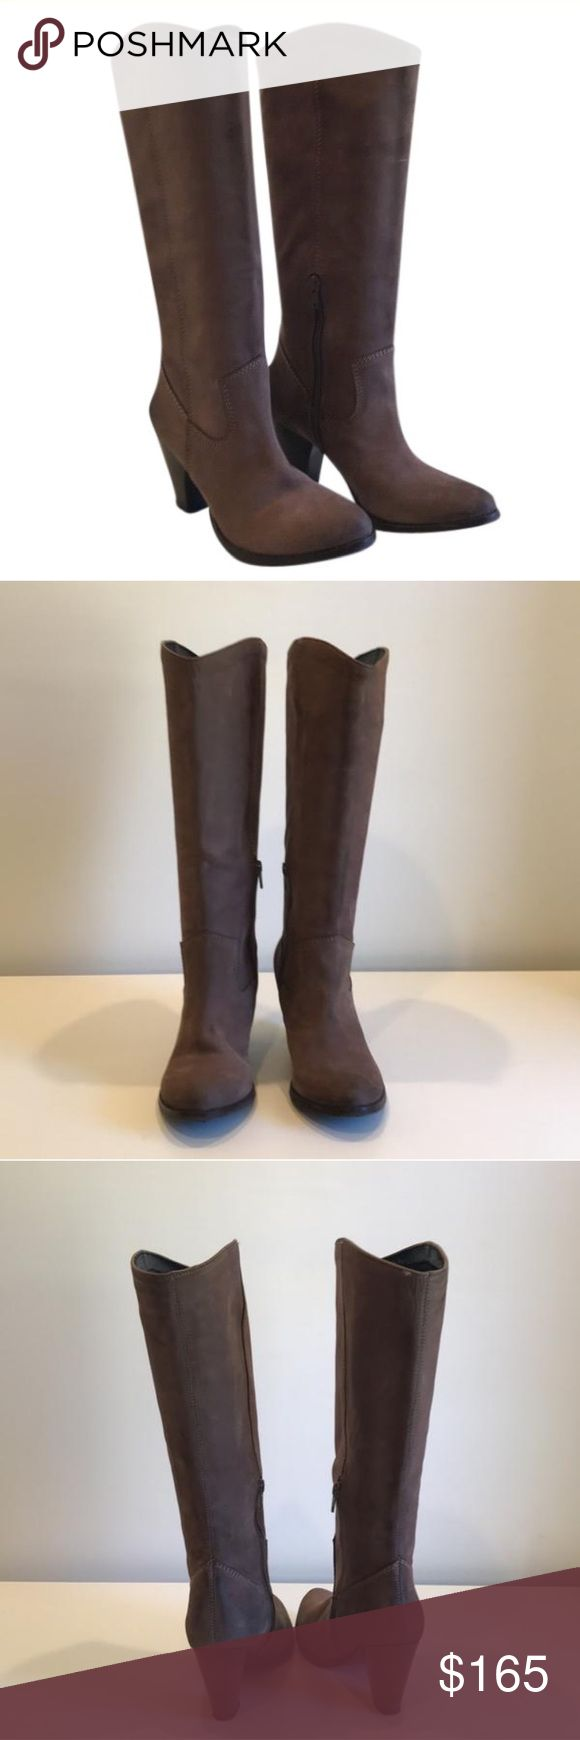 Bronx boots Bronx Brown boots. Great condition! Only worn once. Box not included. Paid $250 plus tax. Bronx Shoes Heeled Boots